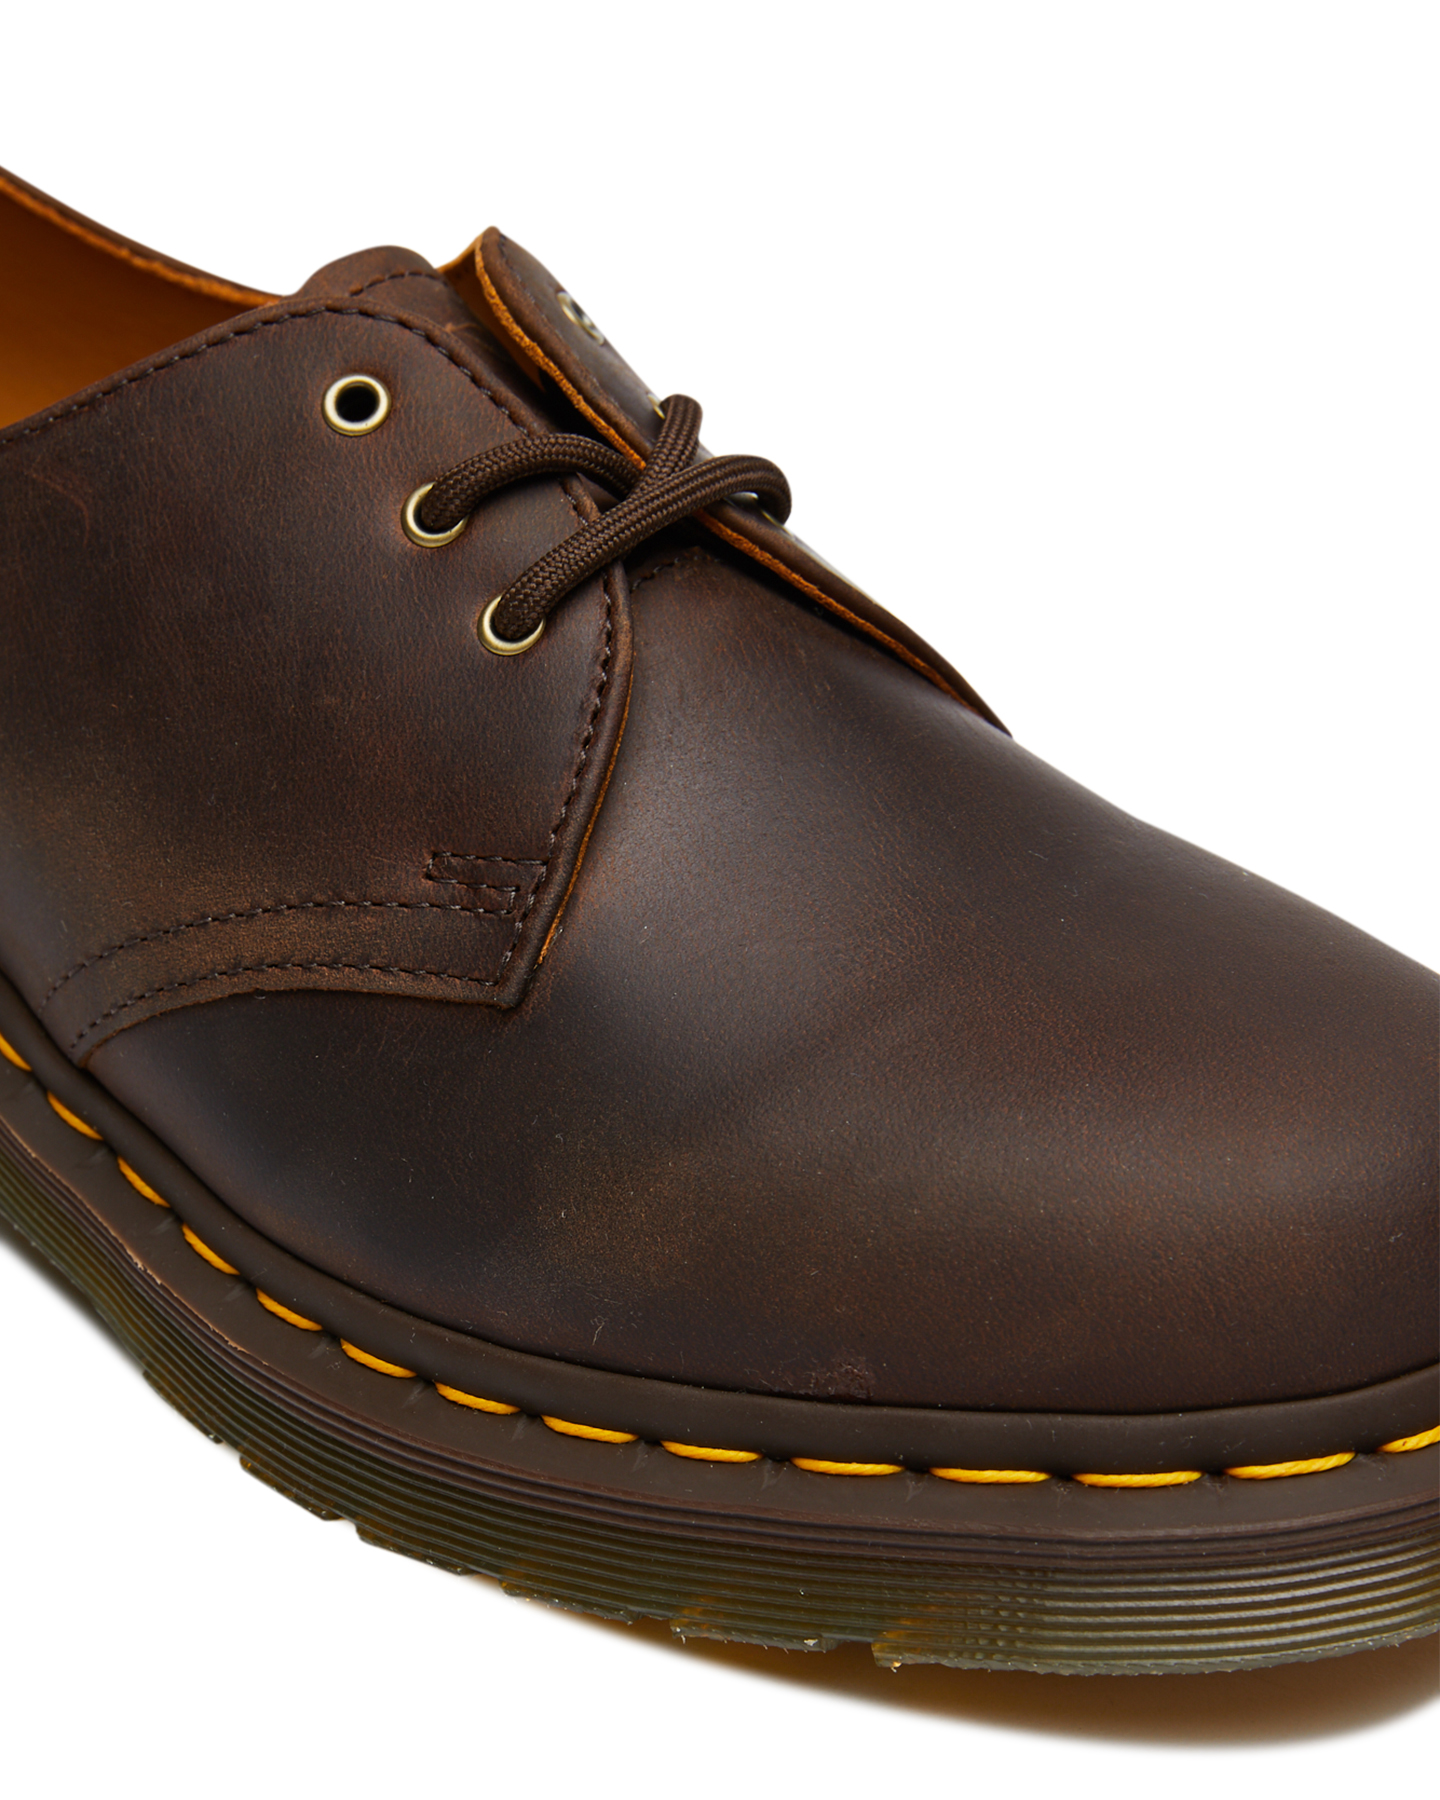 MARTENS FASHION SHOES - SS11838201GAUM · GAUCHO CRAZY HORSE MENS FOOTWEAR DR.  MARTENS FASHION SHOES - SS11838201GAUM ...